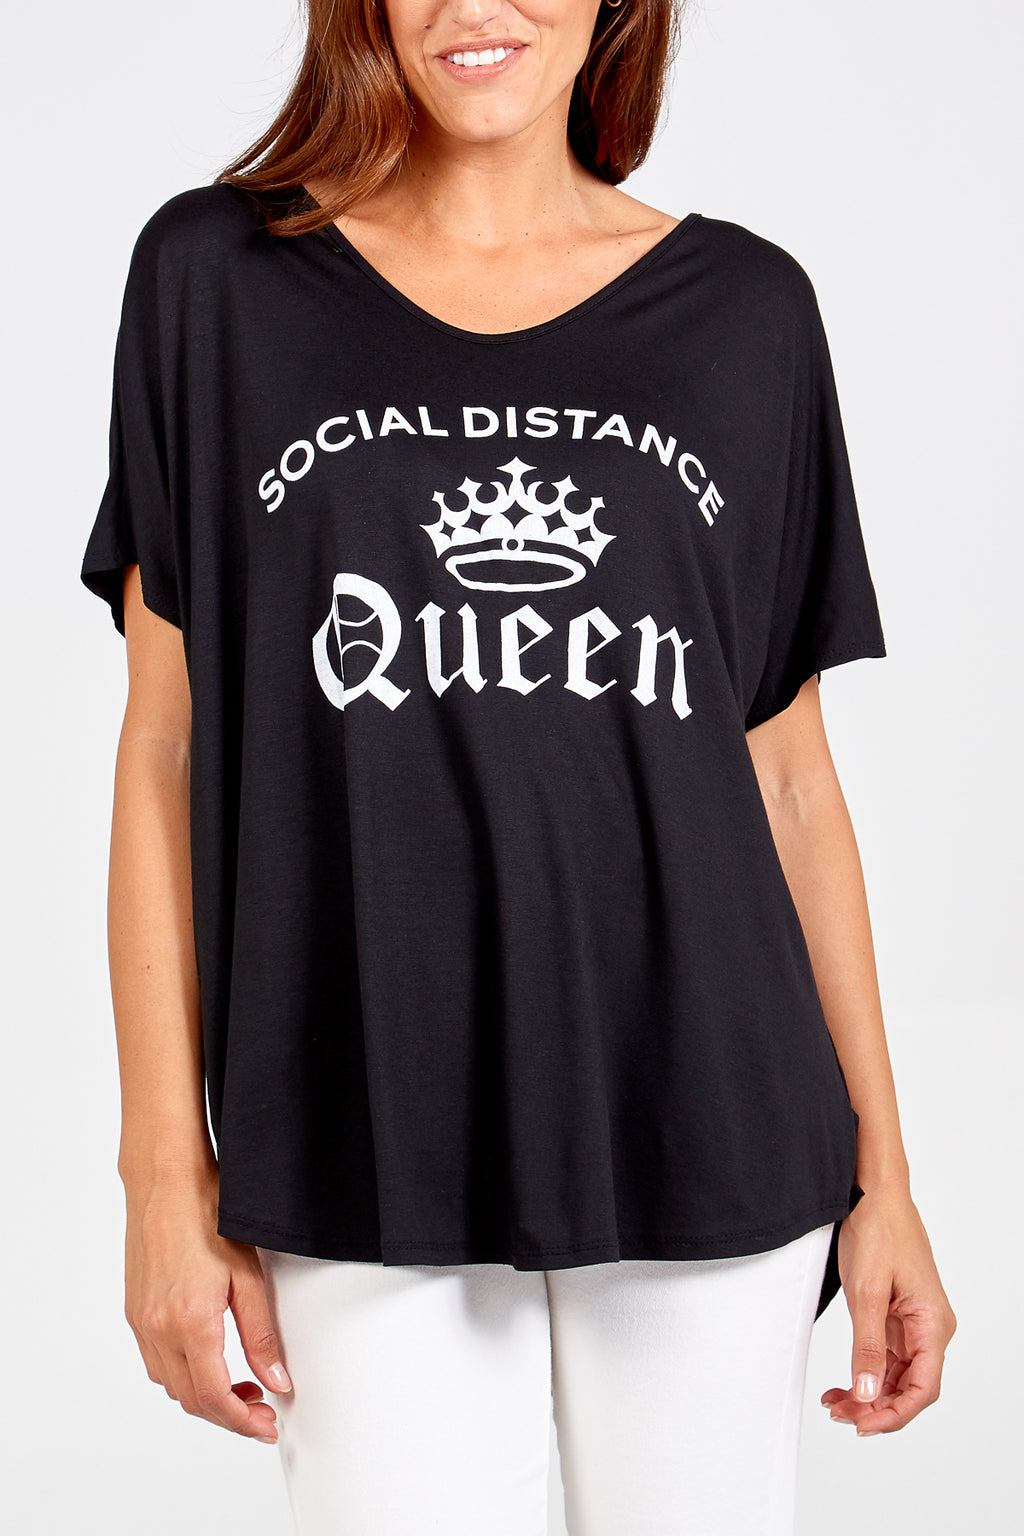 Social Distance Queen High Low Tee